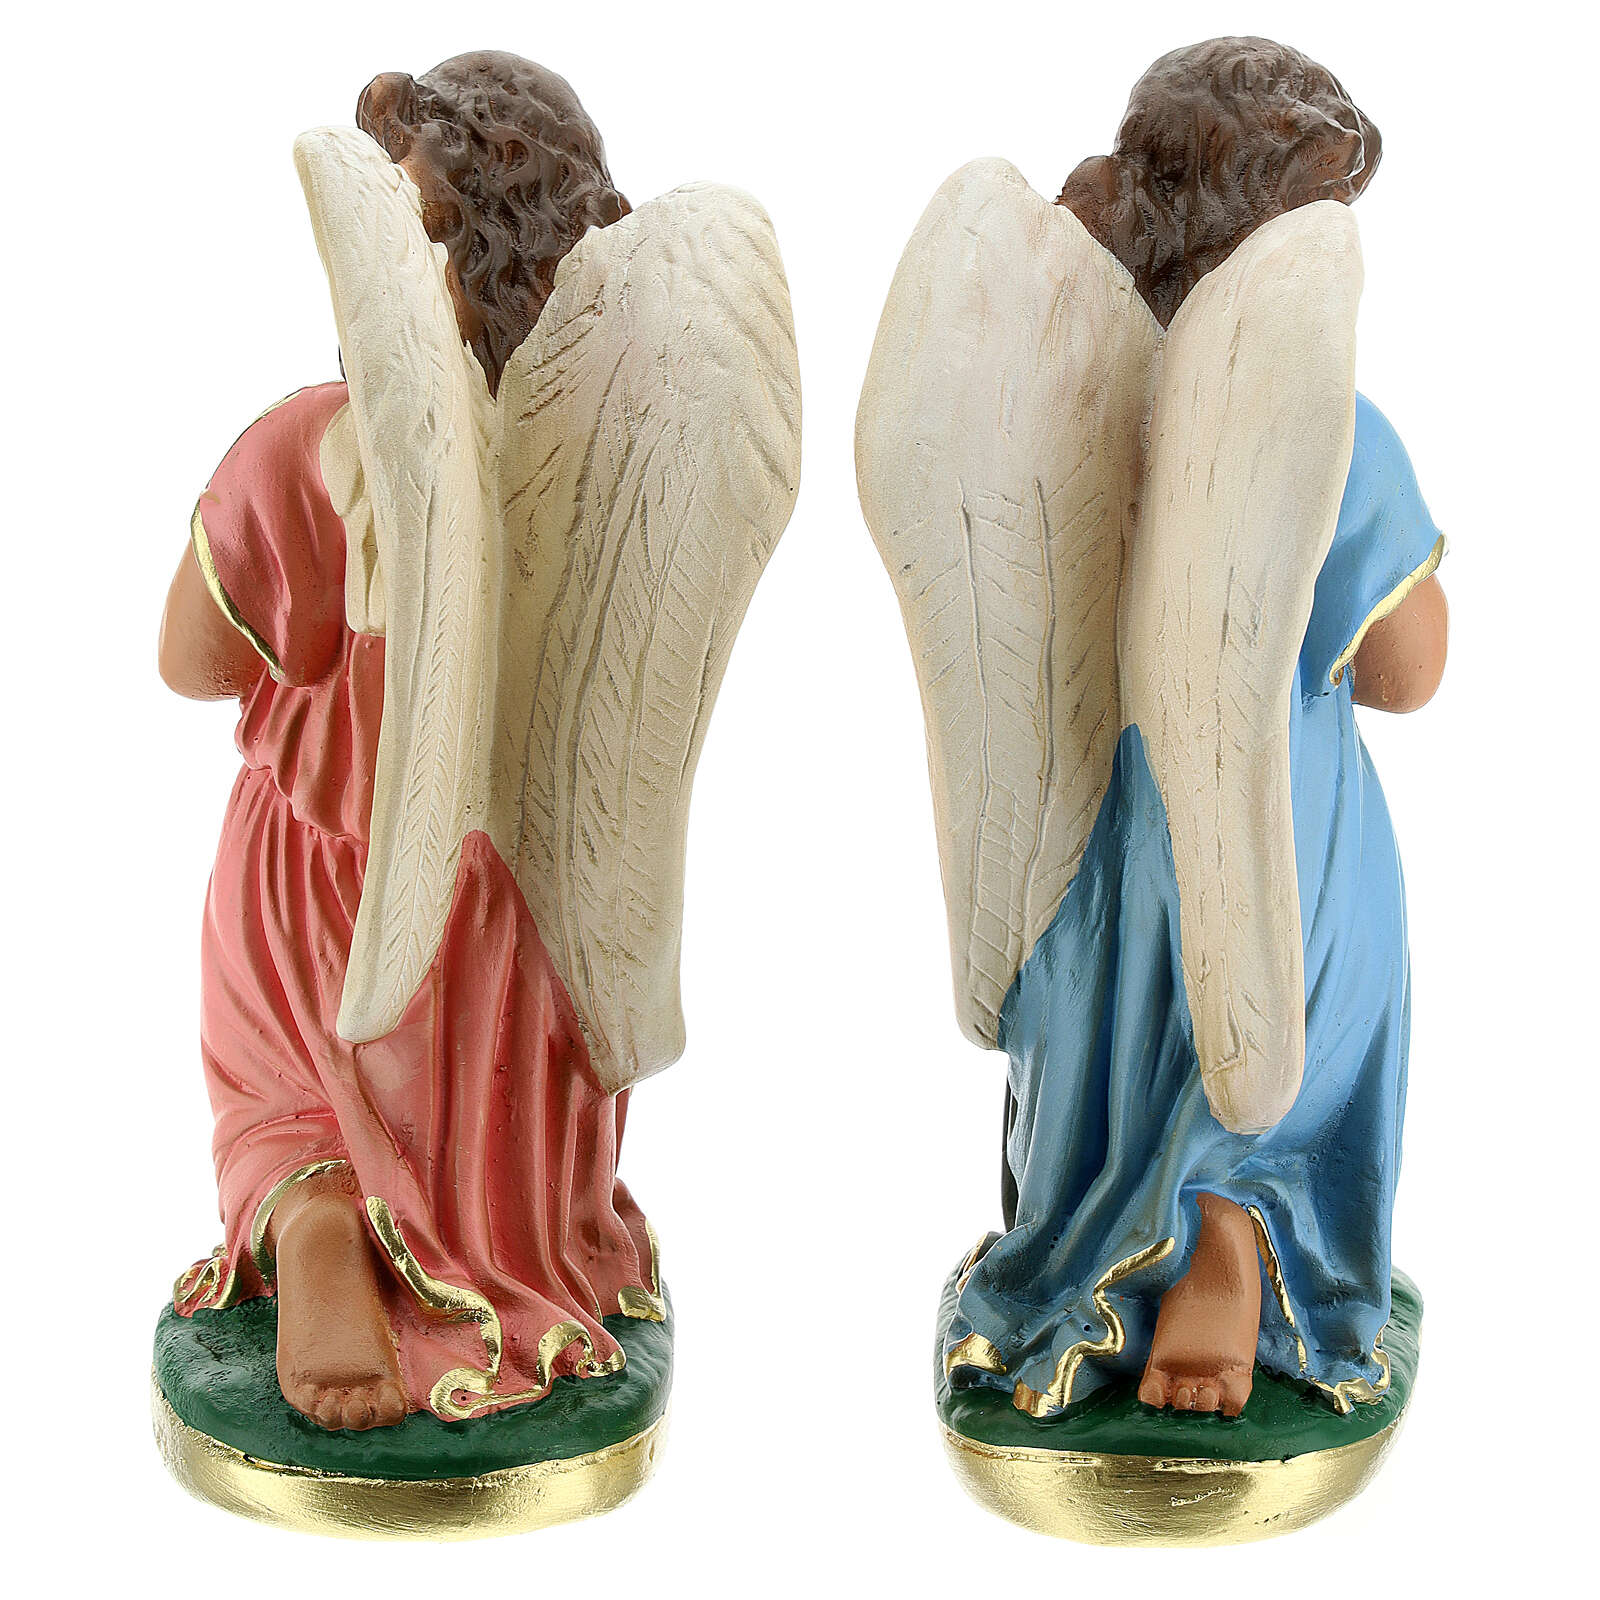 Angels praying statue 8 in hand-painted plaster Arte Barsanti 4